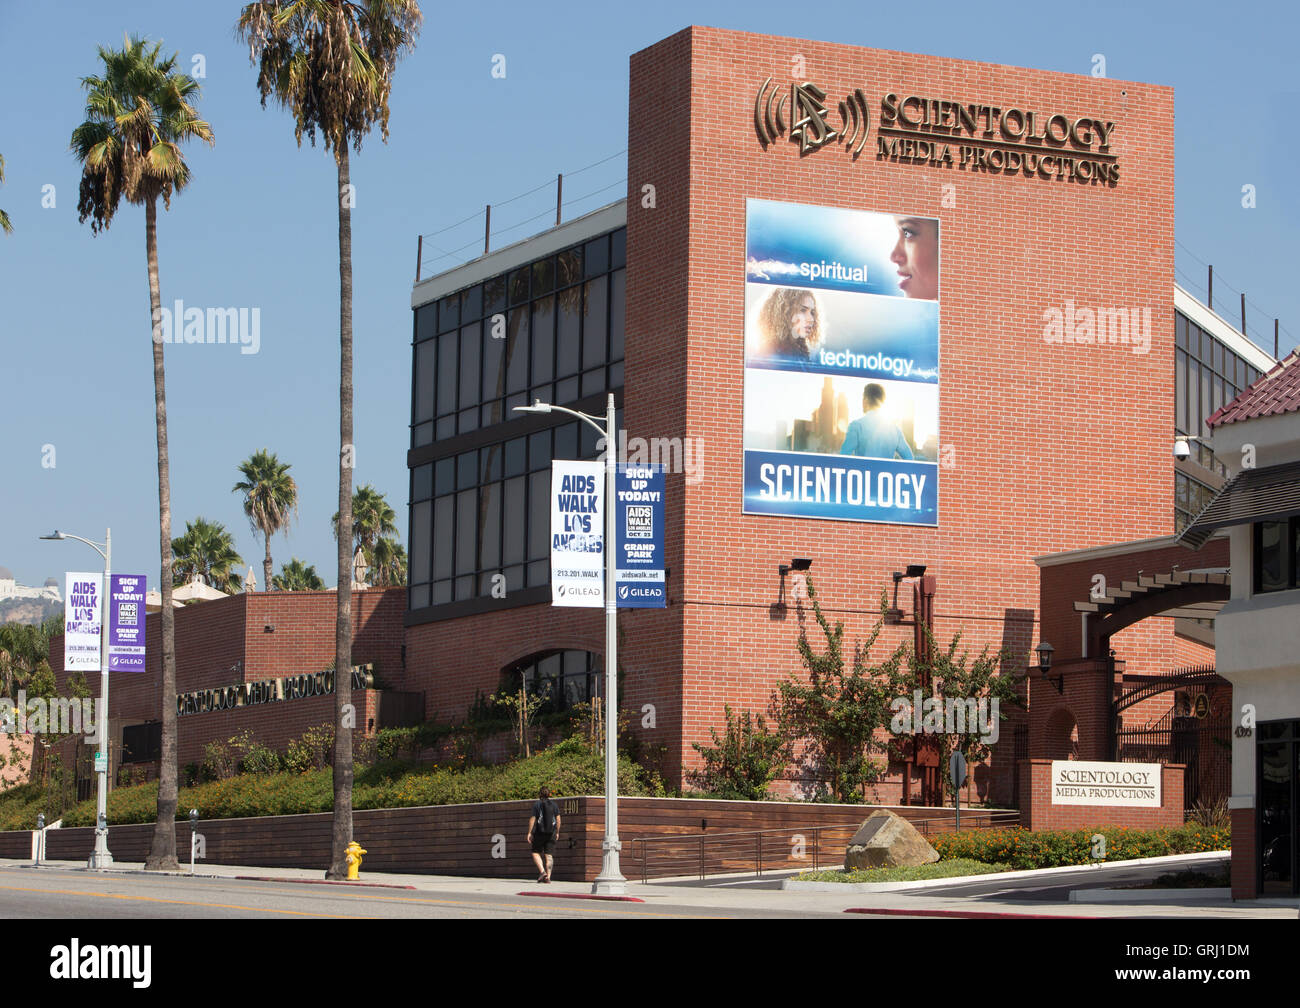 The Church of Scientology Media Productions studio in Hollywood. - Stock Image